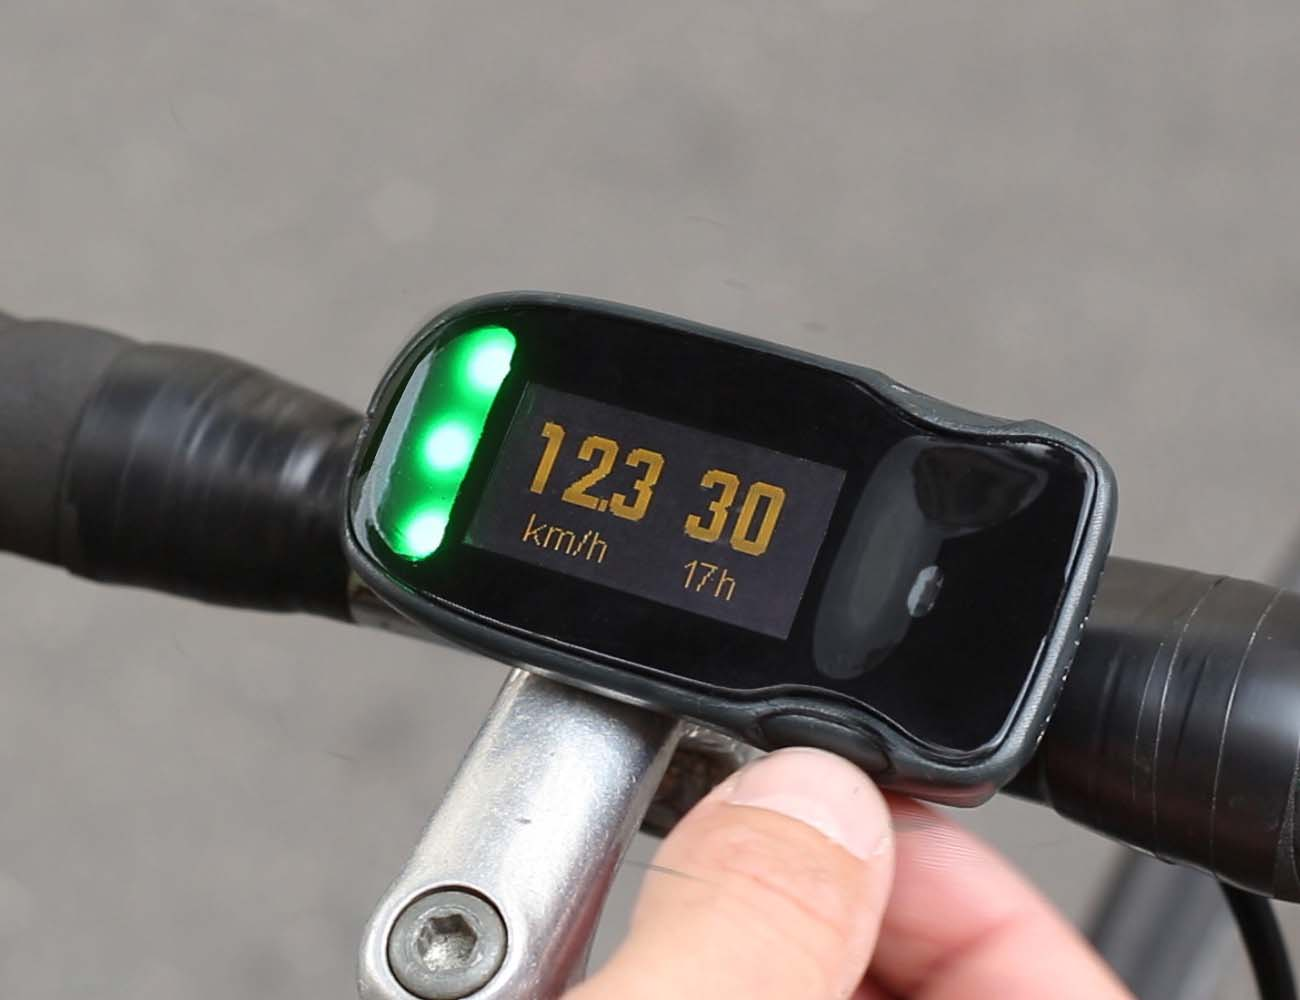 HAIKU – The Bike Assistant For Smart Urban Cyclists